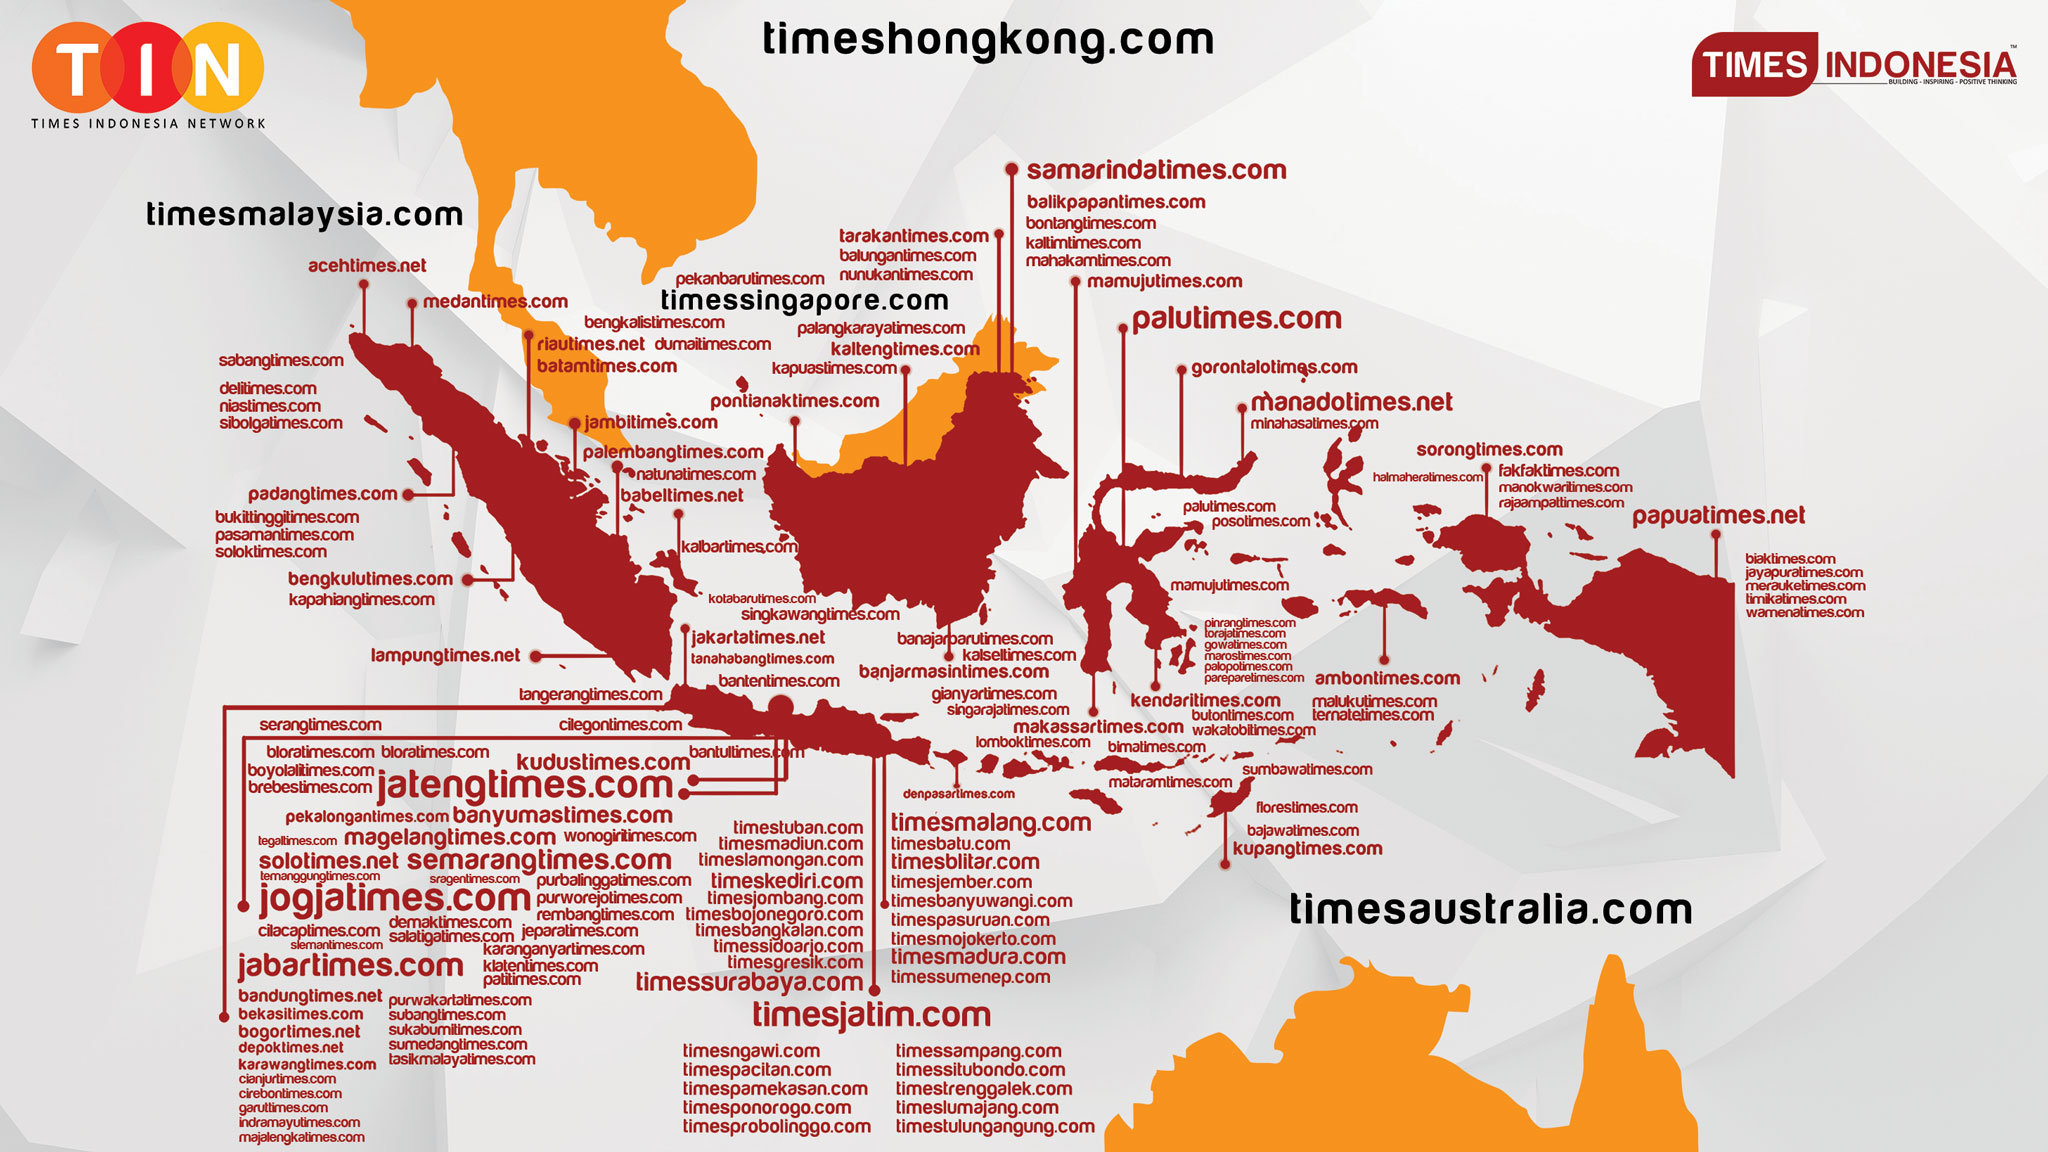 TIMES Indonesia Network